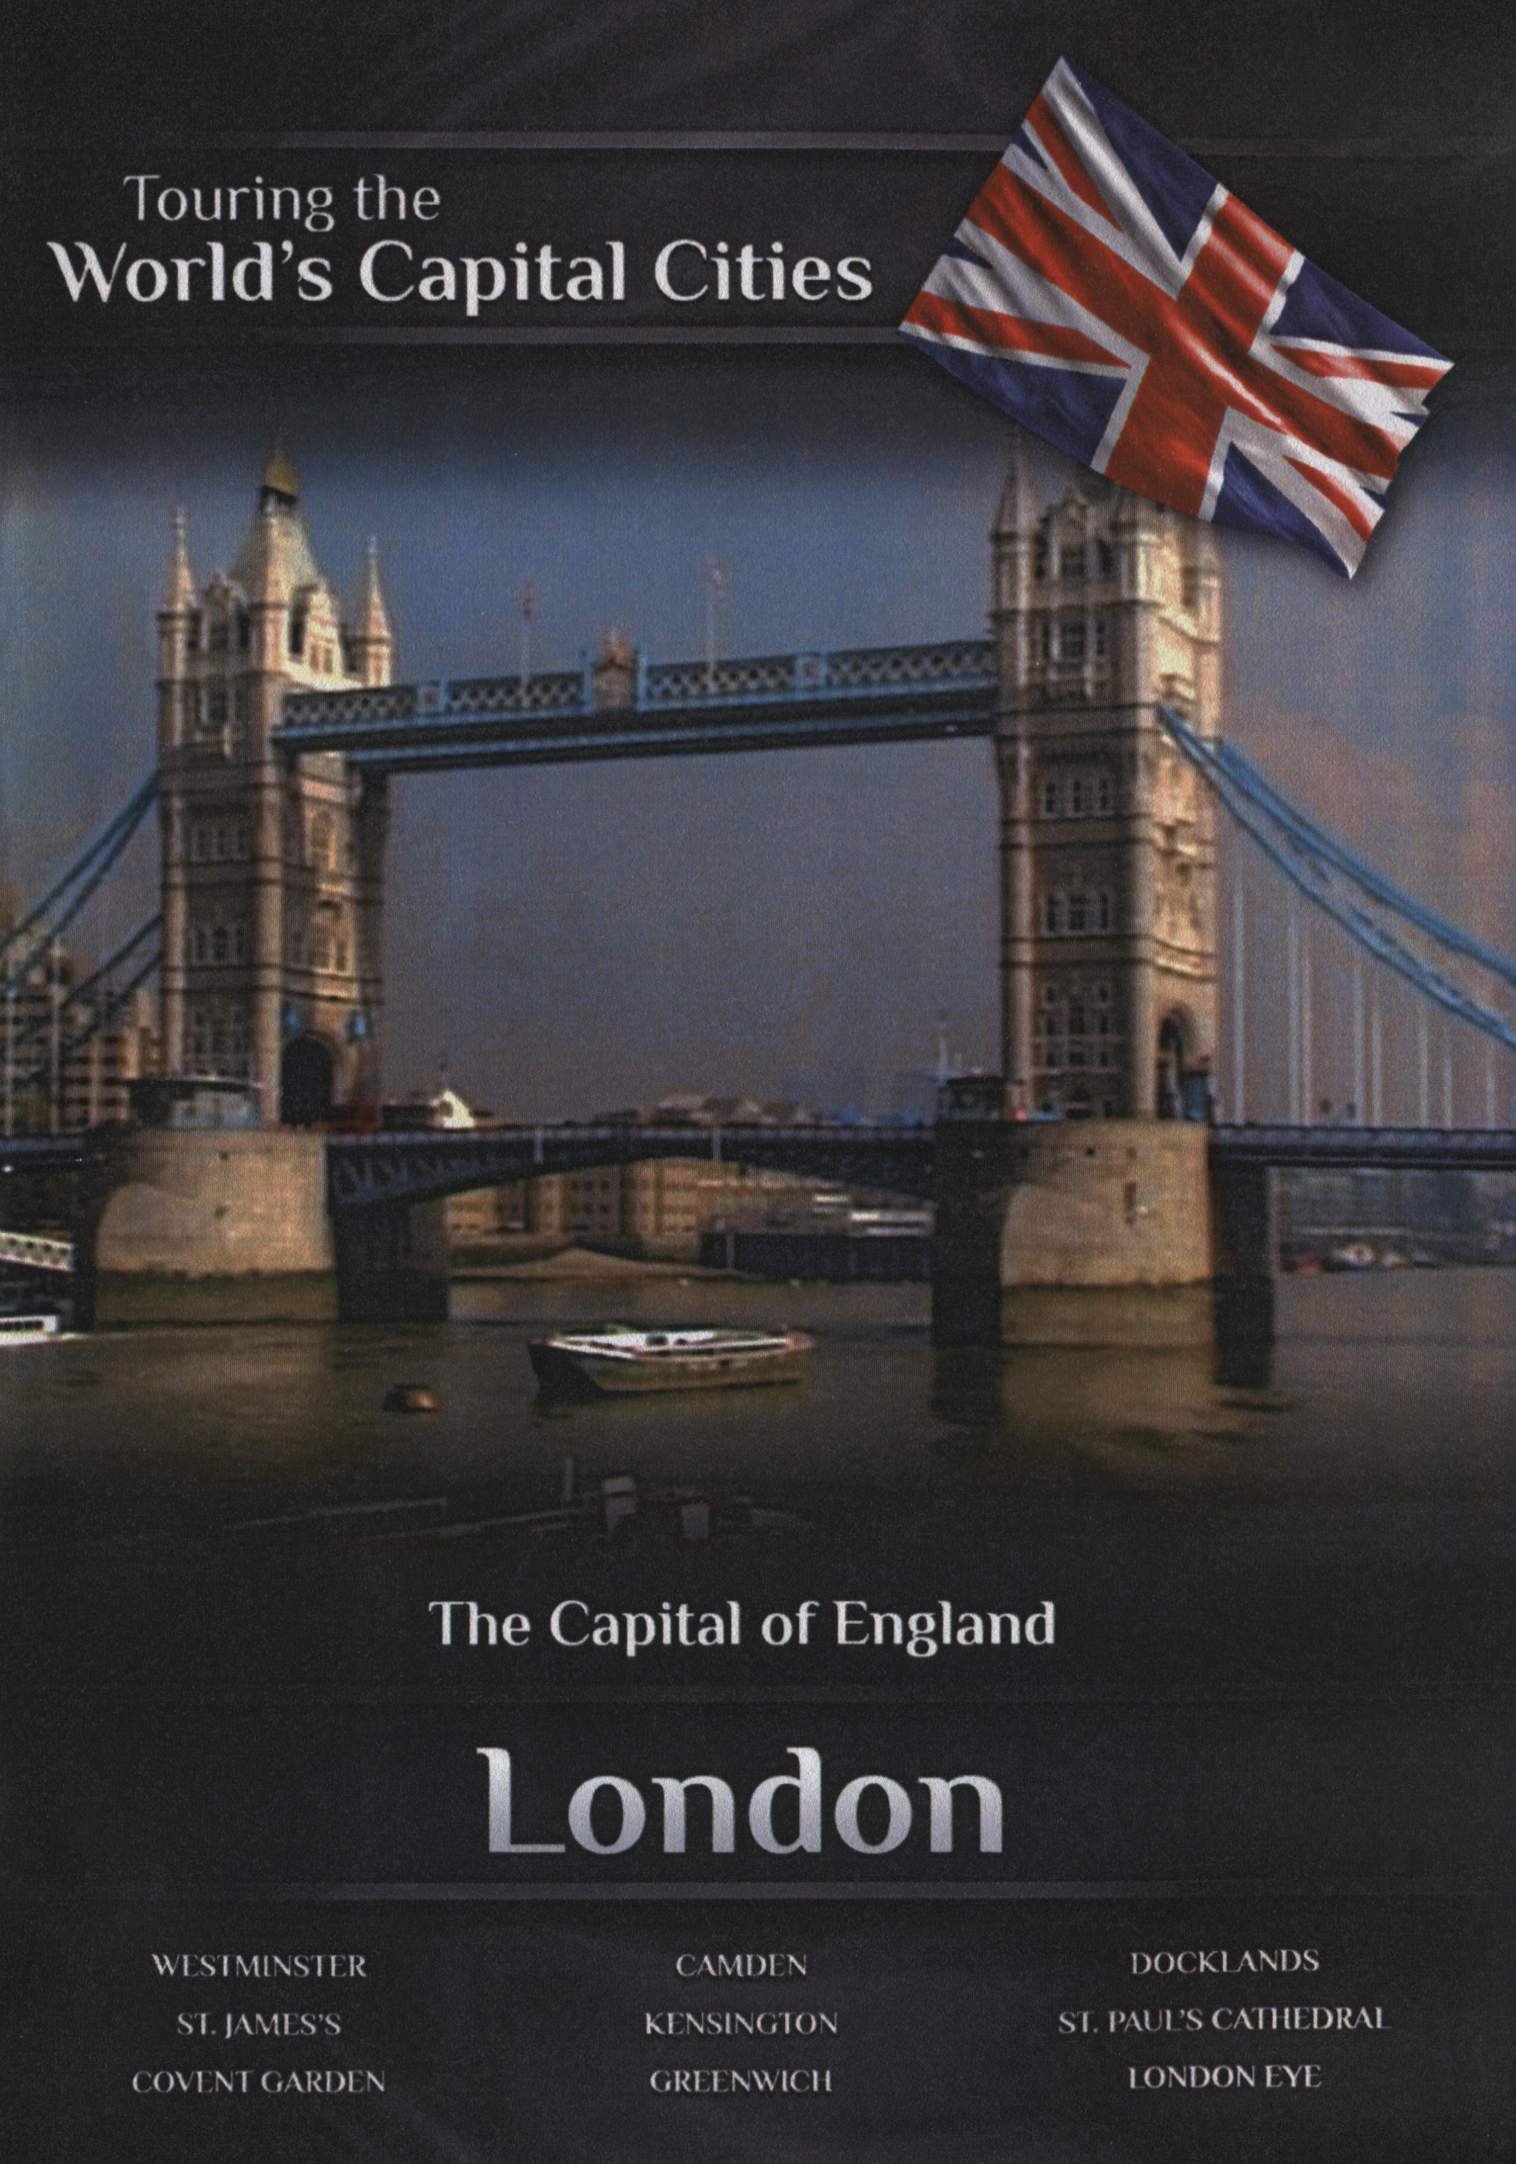 Touring the World's Capital Cities: The Capital of England - London